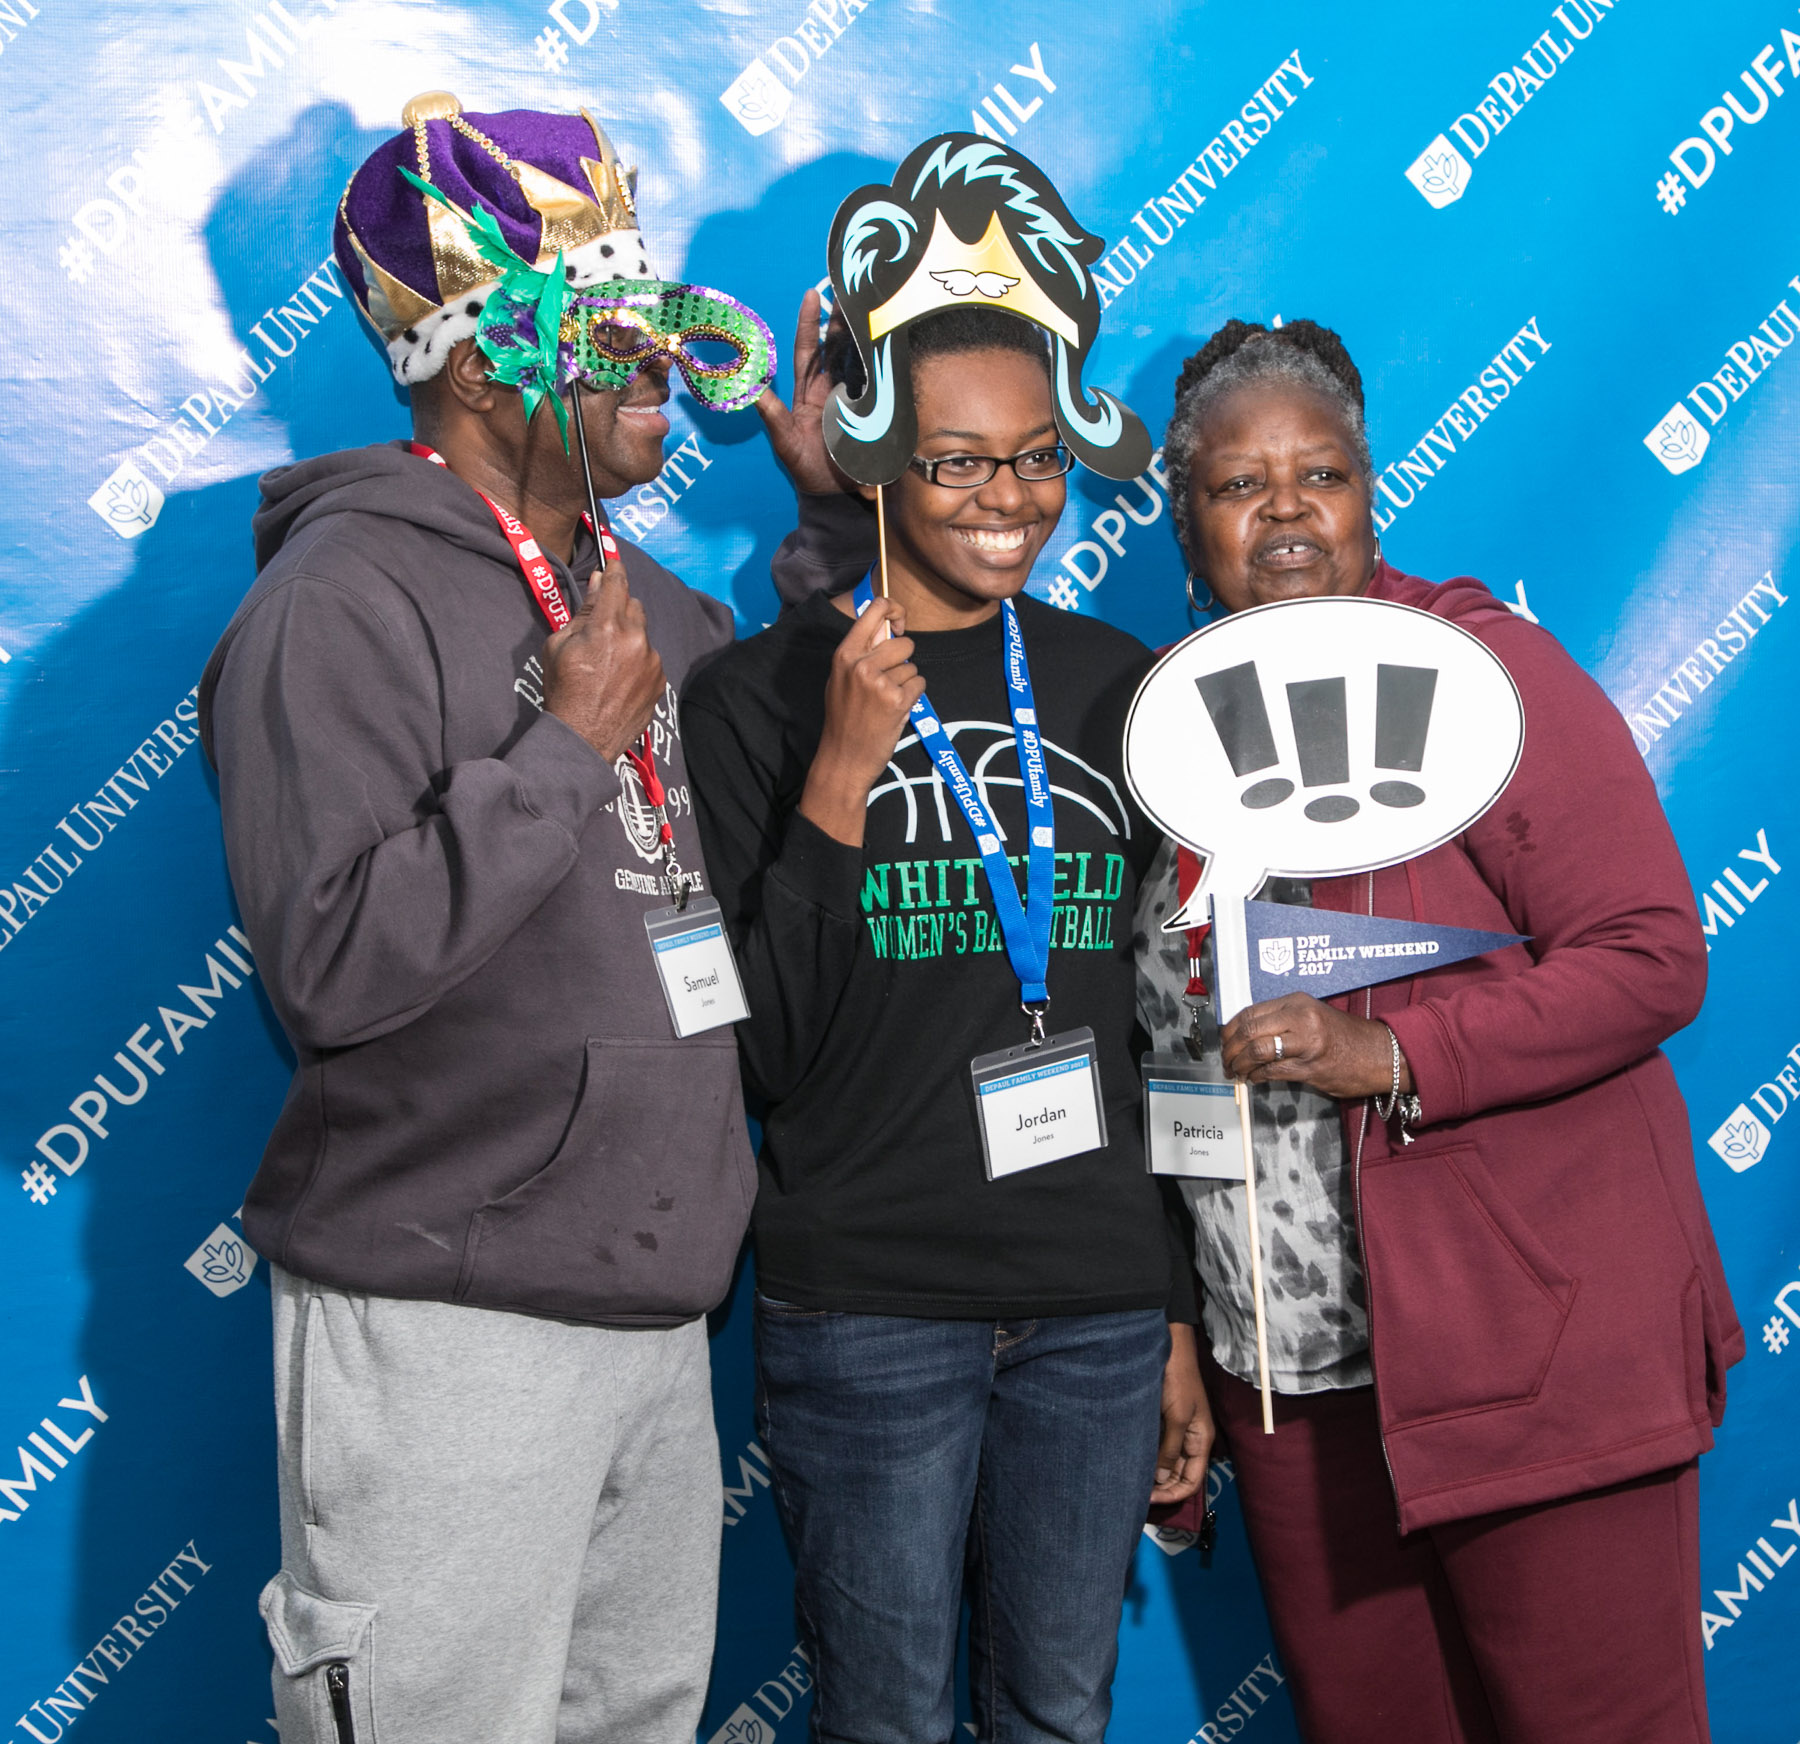 Sam, Jordan and Patricia Jones, left to right, pose for a photo as DePaul students and family members arrive at the Family Weekend Kickoff celebration. (DePaul University/Jamie Moncrief)